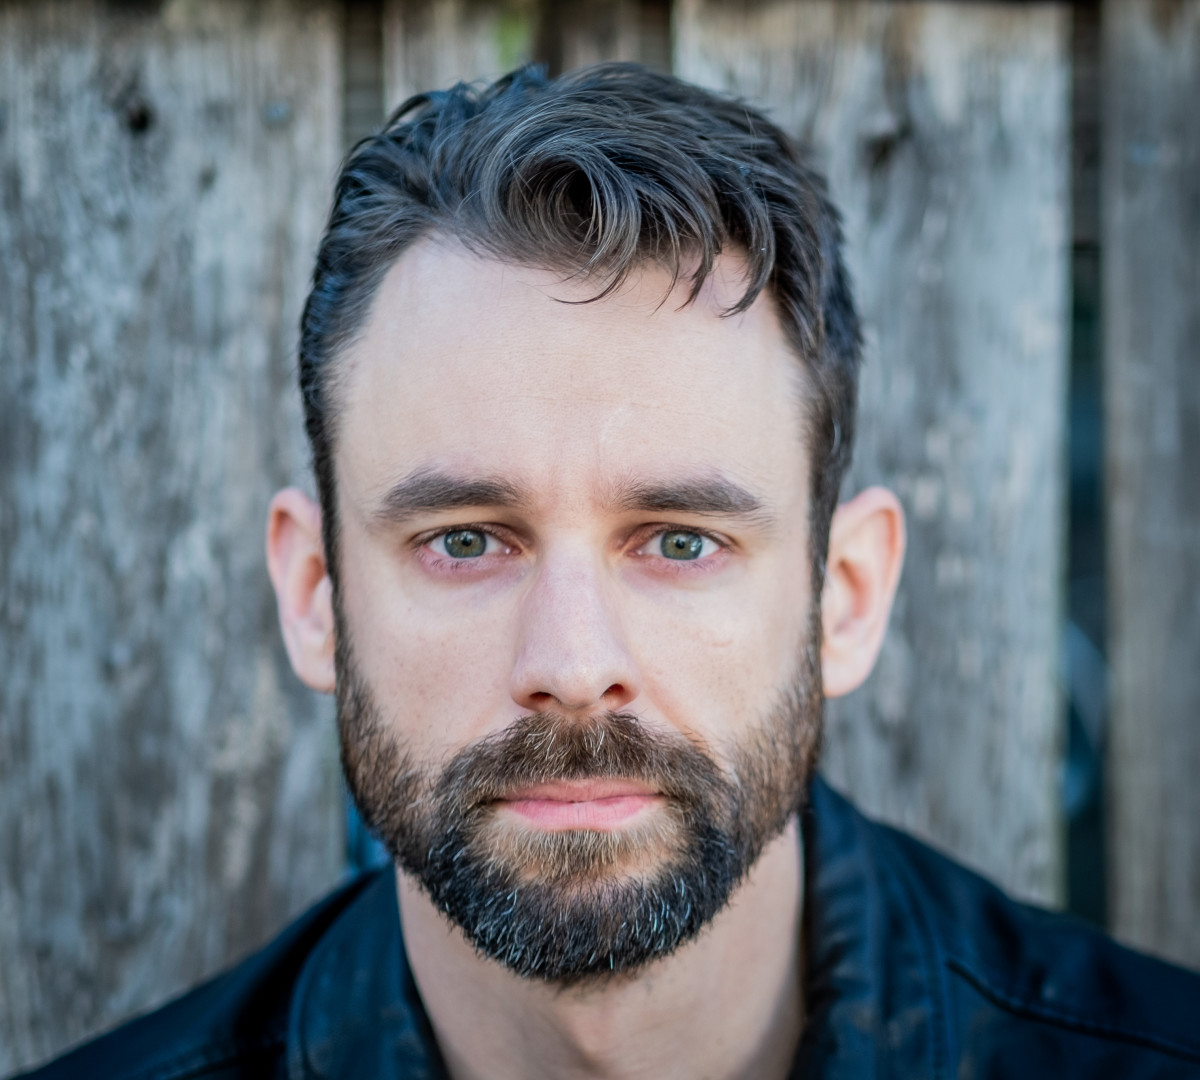 This is director Olivier Dalipagic. He was glad to shed some light regarding just how he helped make a feature film under $25,000.